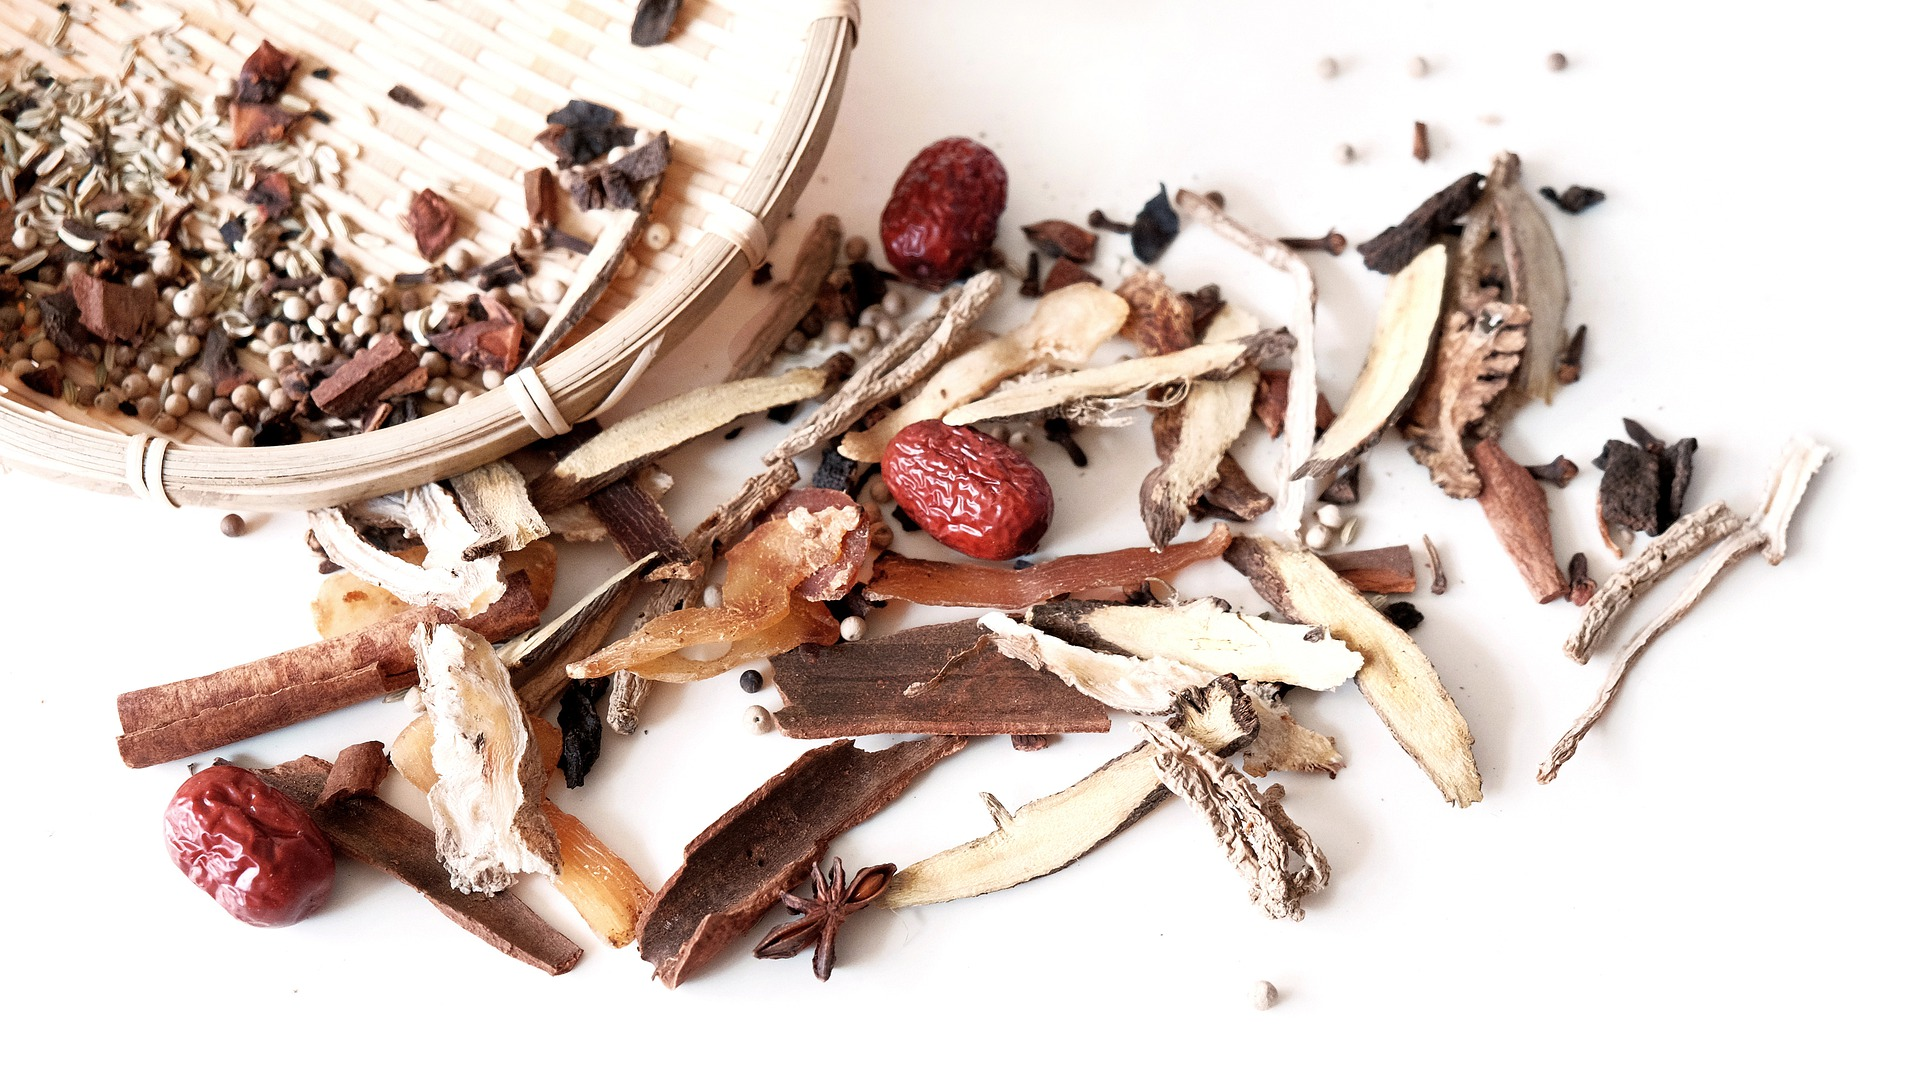 traditional-chinese-medicine-5397193_1920